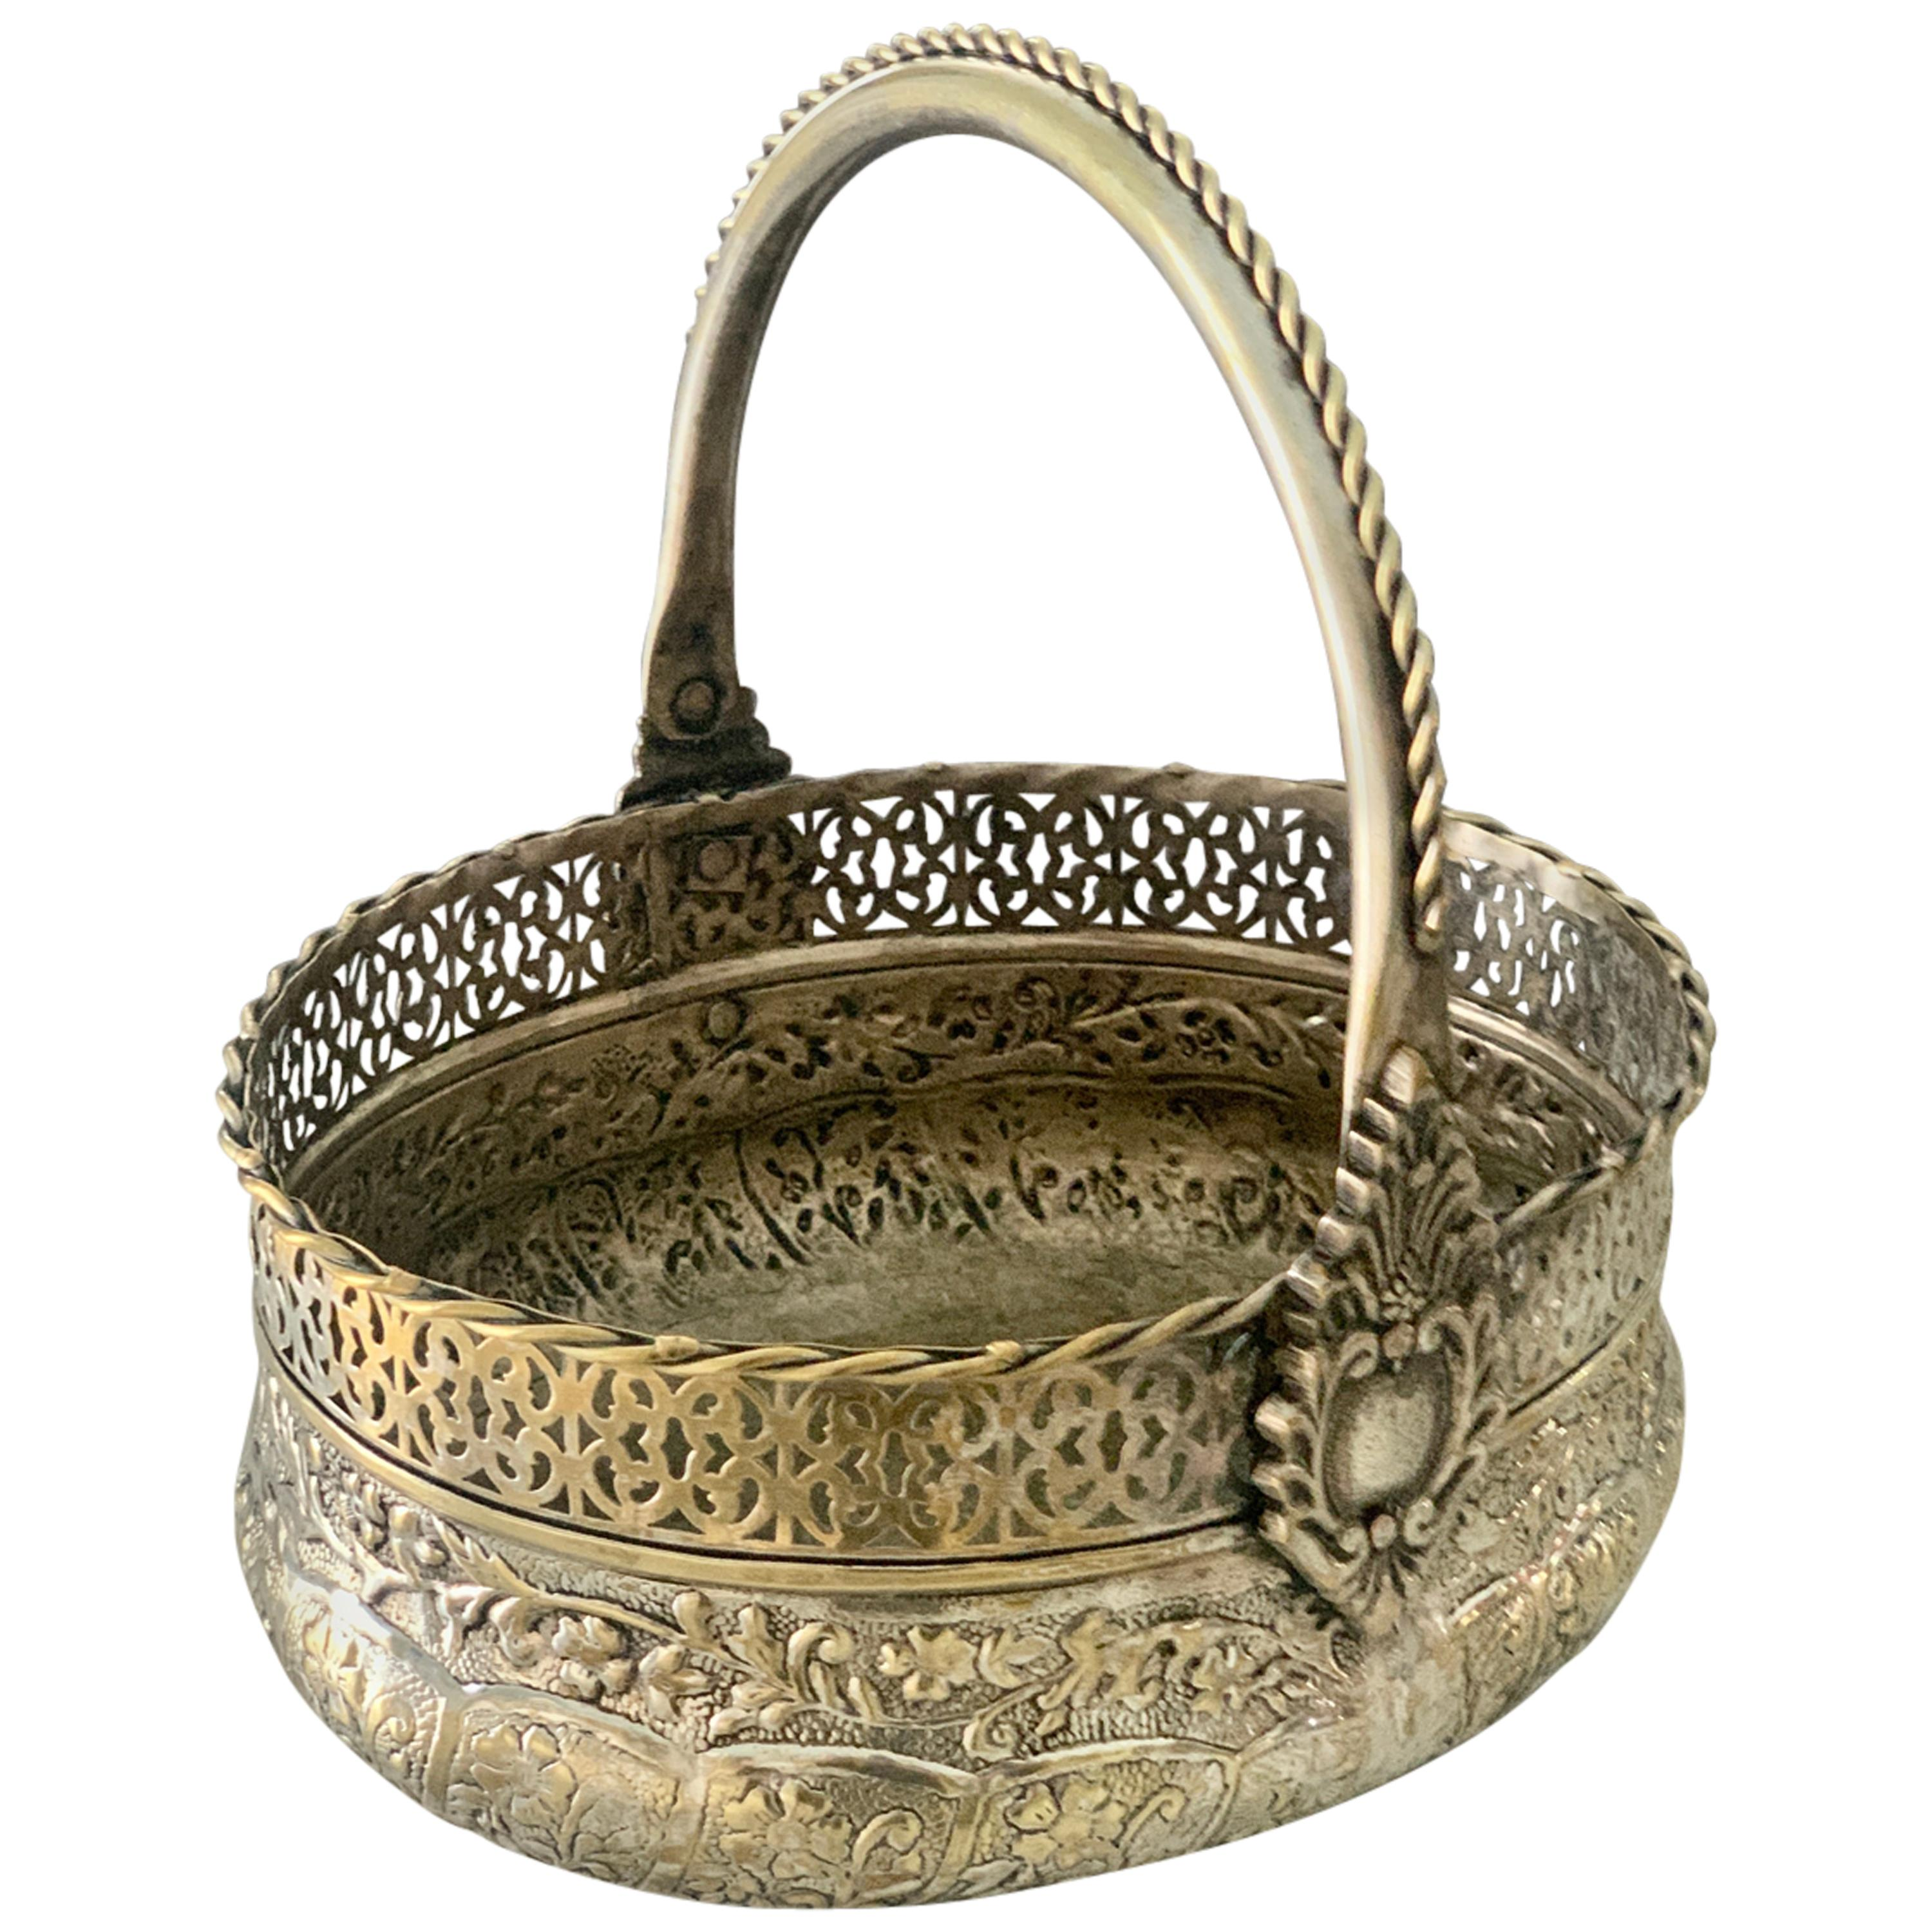 Silver Plate Repousse Basket with Handle